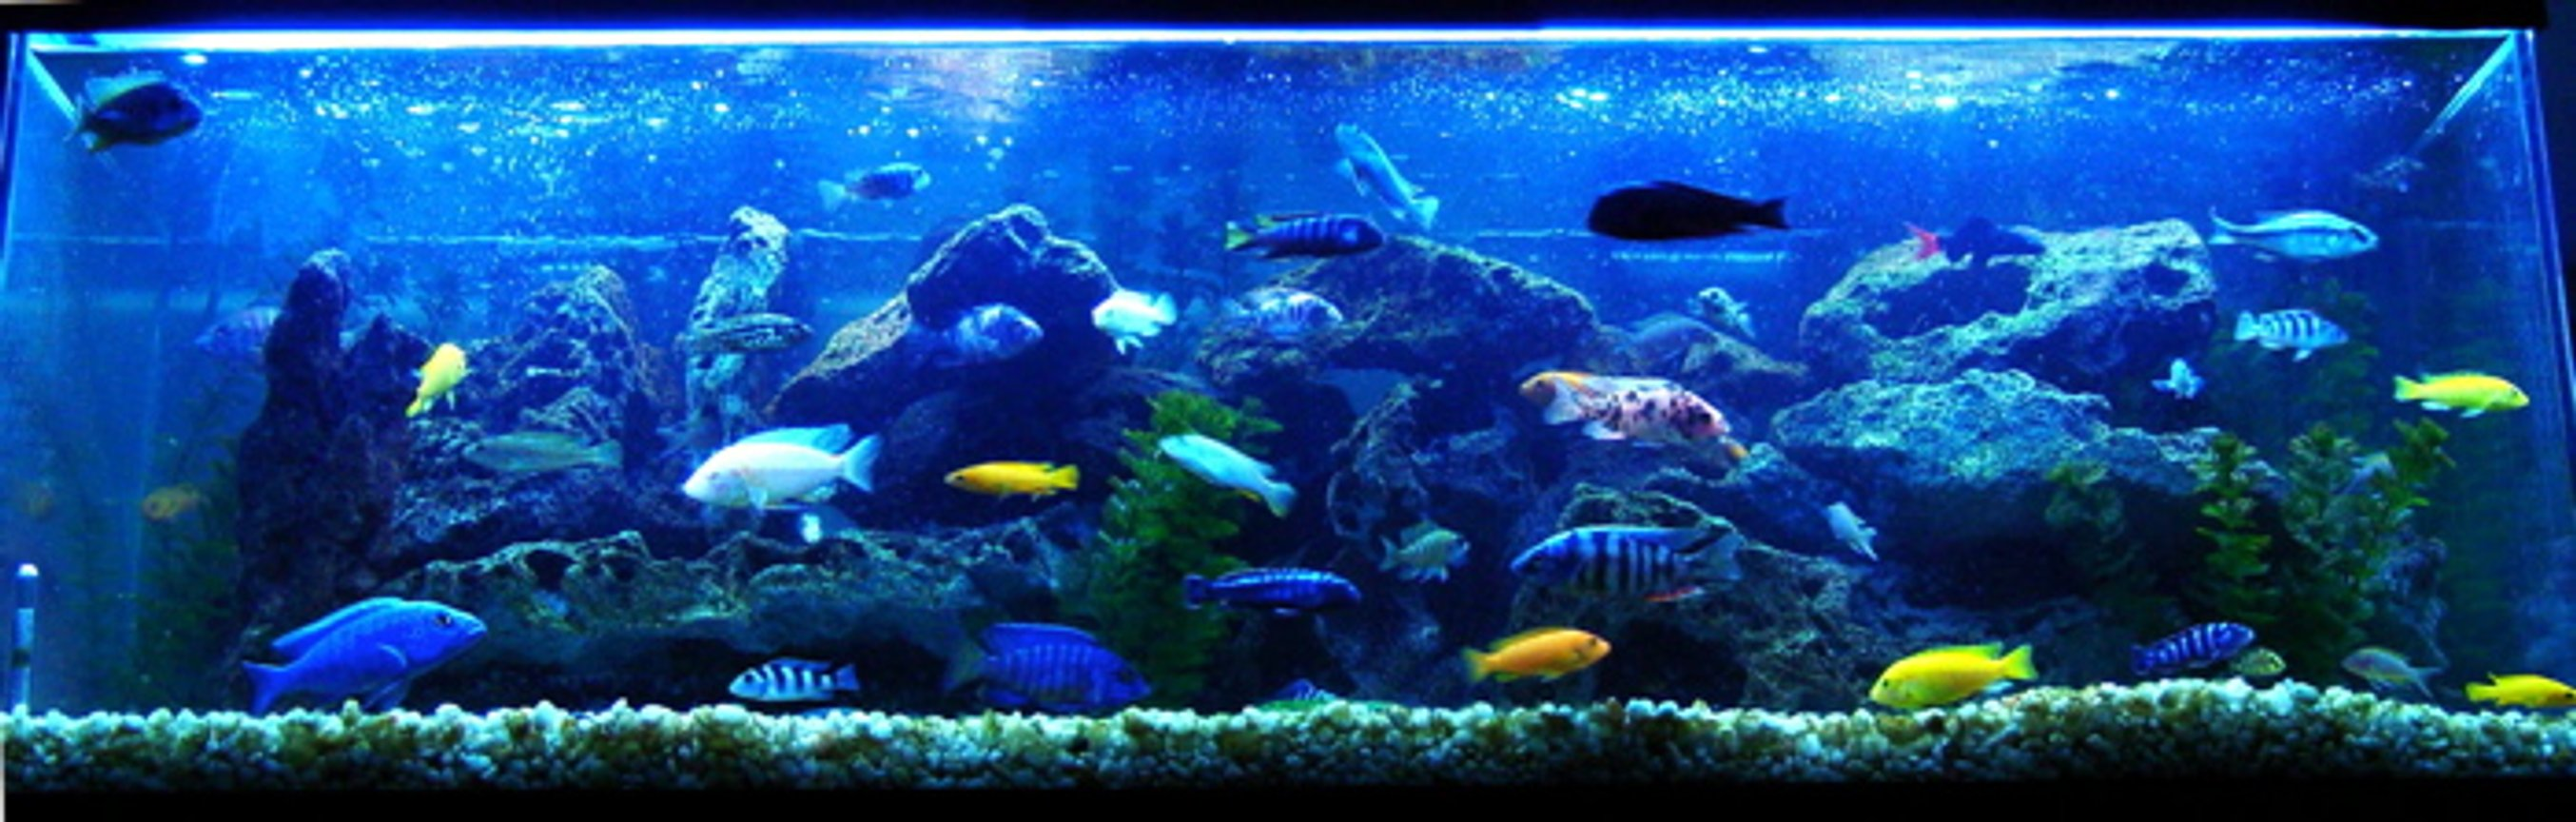 60 gallons freshwater fish tank (mostly fish and non-living decorations) - My main African mixed tank is doing very well. Several breedings have been happening constantly, and keeping me very busy as well. I added a couple more Synodontis Multipunctatus (My all time favorite Cat) and I'm hoping for some spawns from them. My Electric Blue is holding again for her second time, I can't wait for them! I'm in the works of getting my father's tank to replace this one, just gotta figure out how to get it over to my place. My Electric Blue couple just released 42 fry, plus the 3 babies I could only save from the first batch. I can't wait for these guys to get bigger.